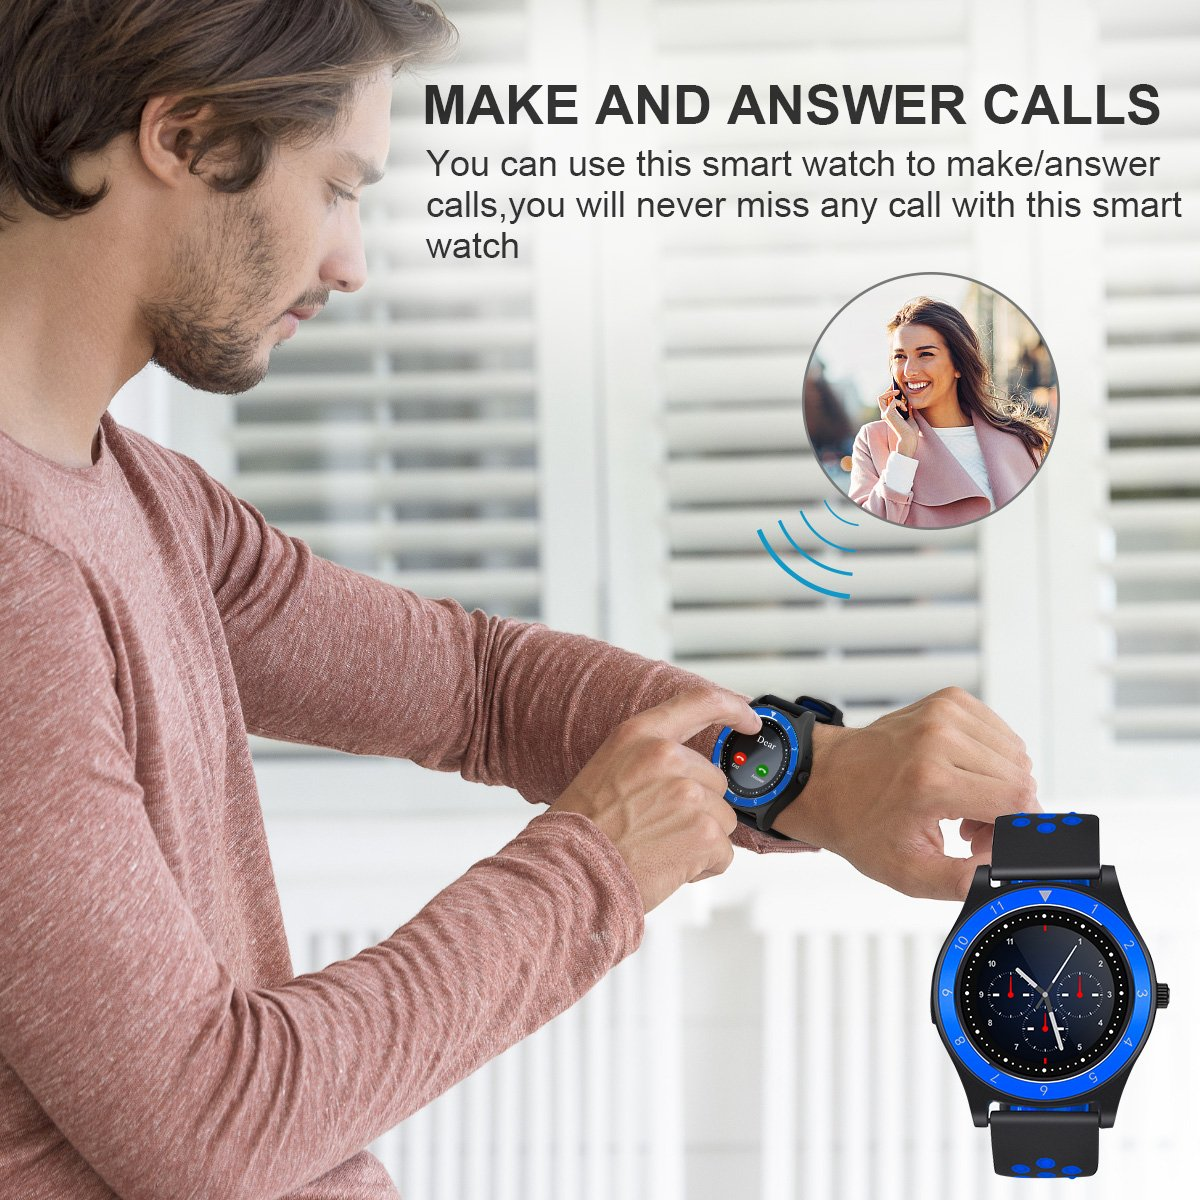 Smart Watch,Bluetooth Smartwatch Touch Screen Wrist Watch with Camera/SIM Card Slot,Waterproof Phone Smart Watch Sports Fitness Tracker for Android iPhone IOS Phones Samsung Huawei for Kids Women Men by Topffy (Image #6)